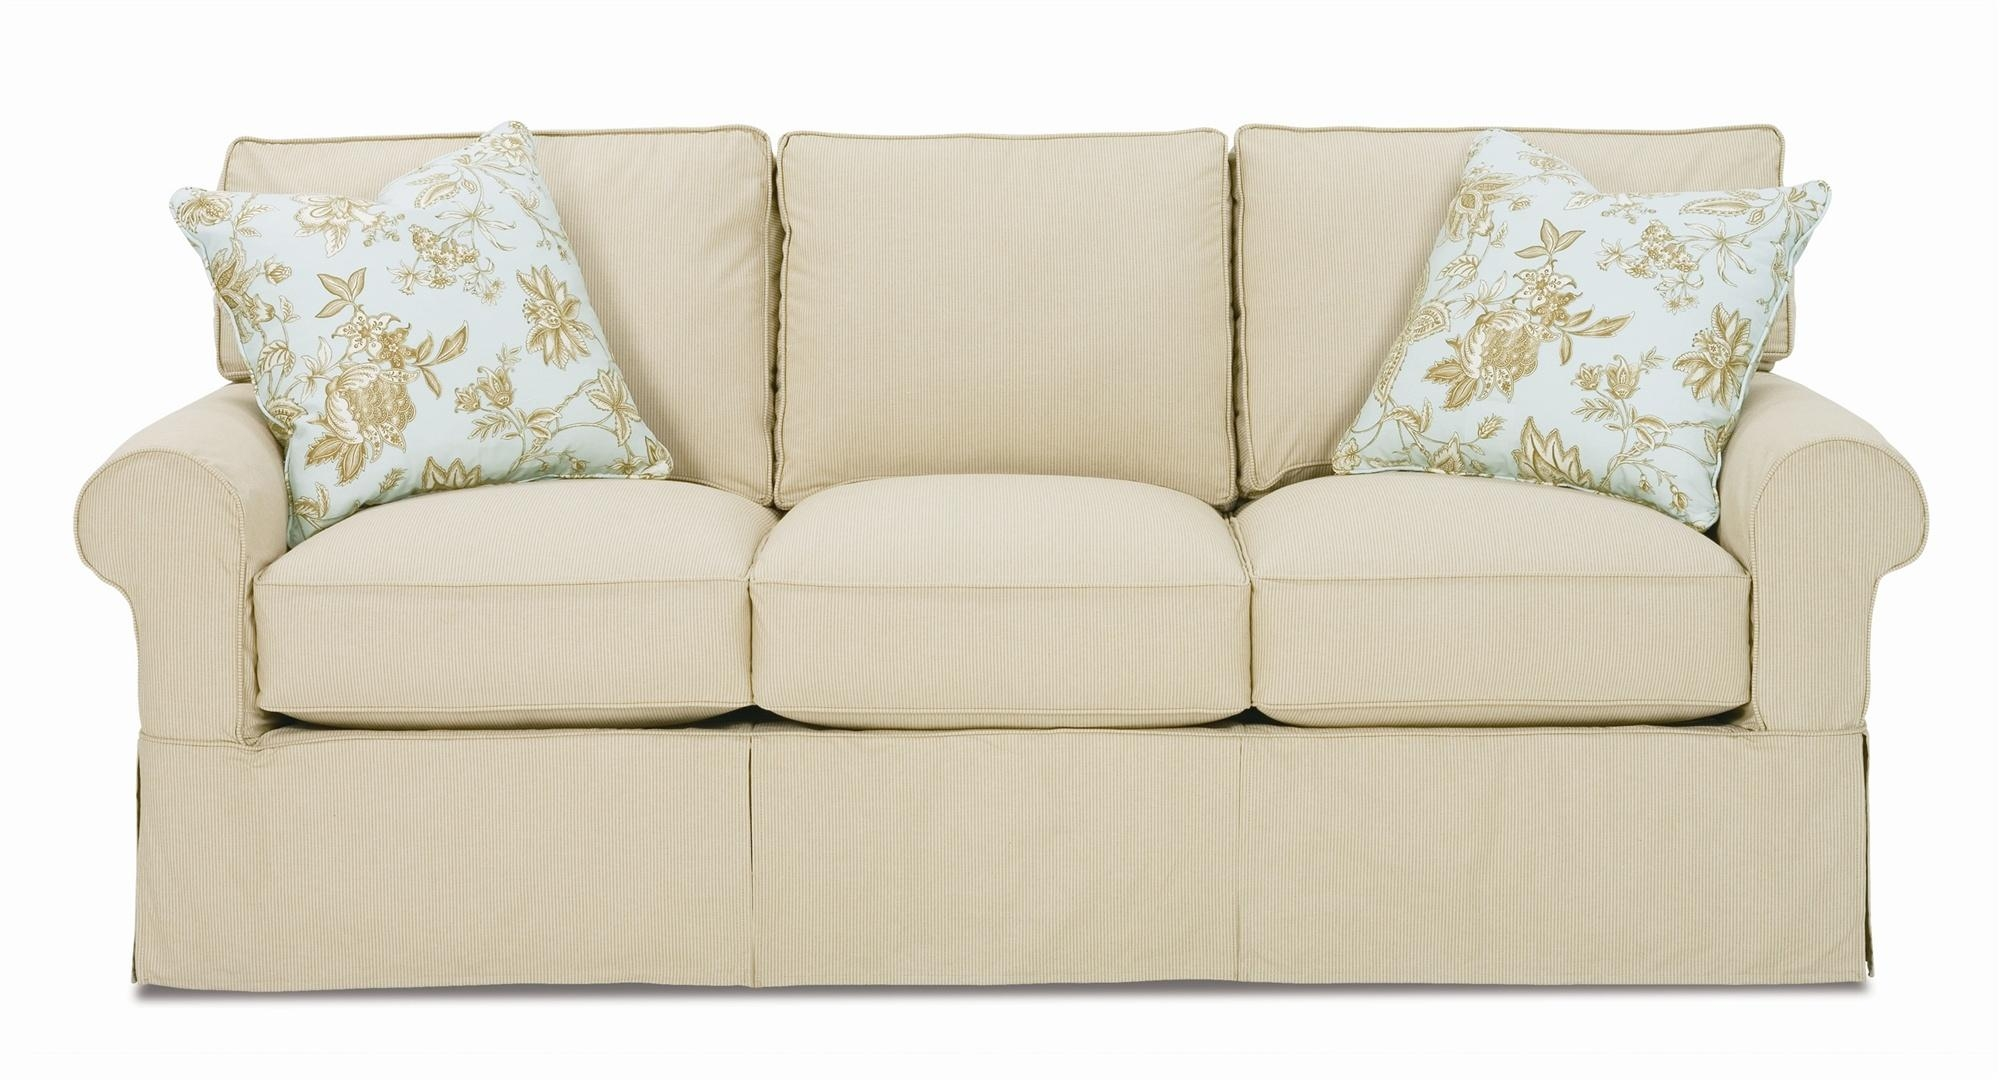 Sofas Center : Remarkable Piece Sofa Covers Picture Design Within 3 Piece Sofa Covers (View 12 of 20)